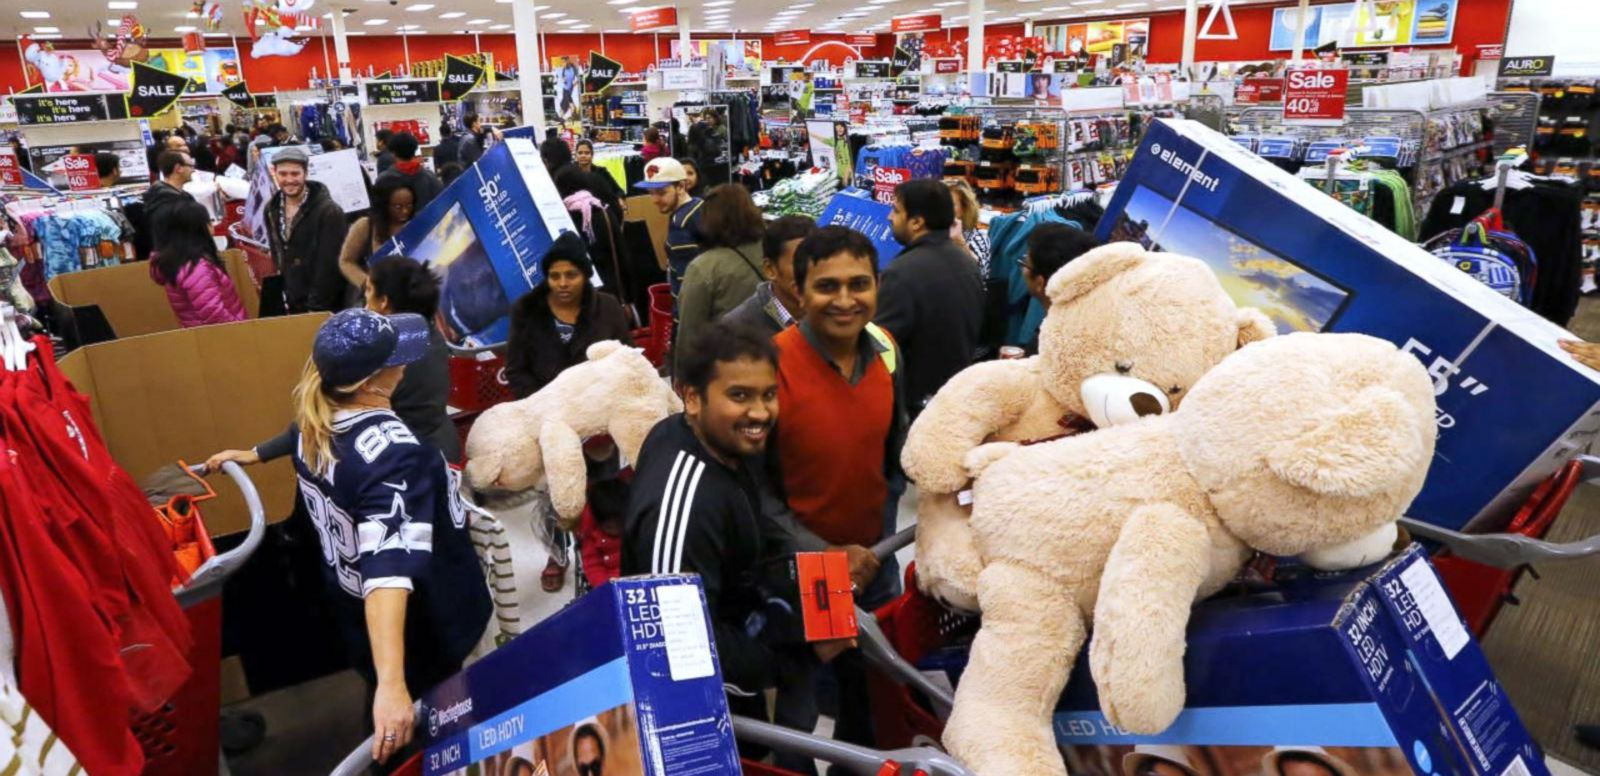 VIDEO: Black Friday Shoppers in Force All Across the Country